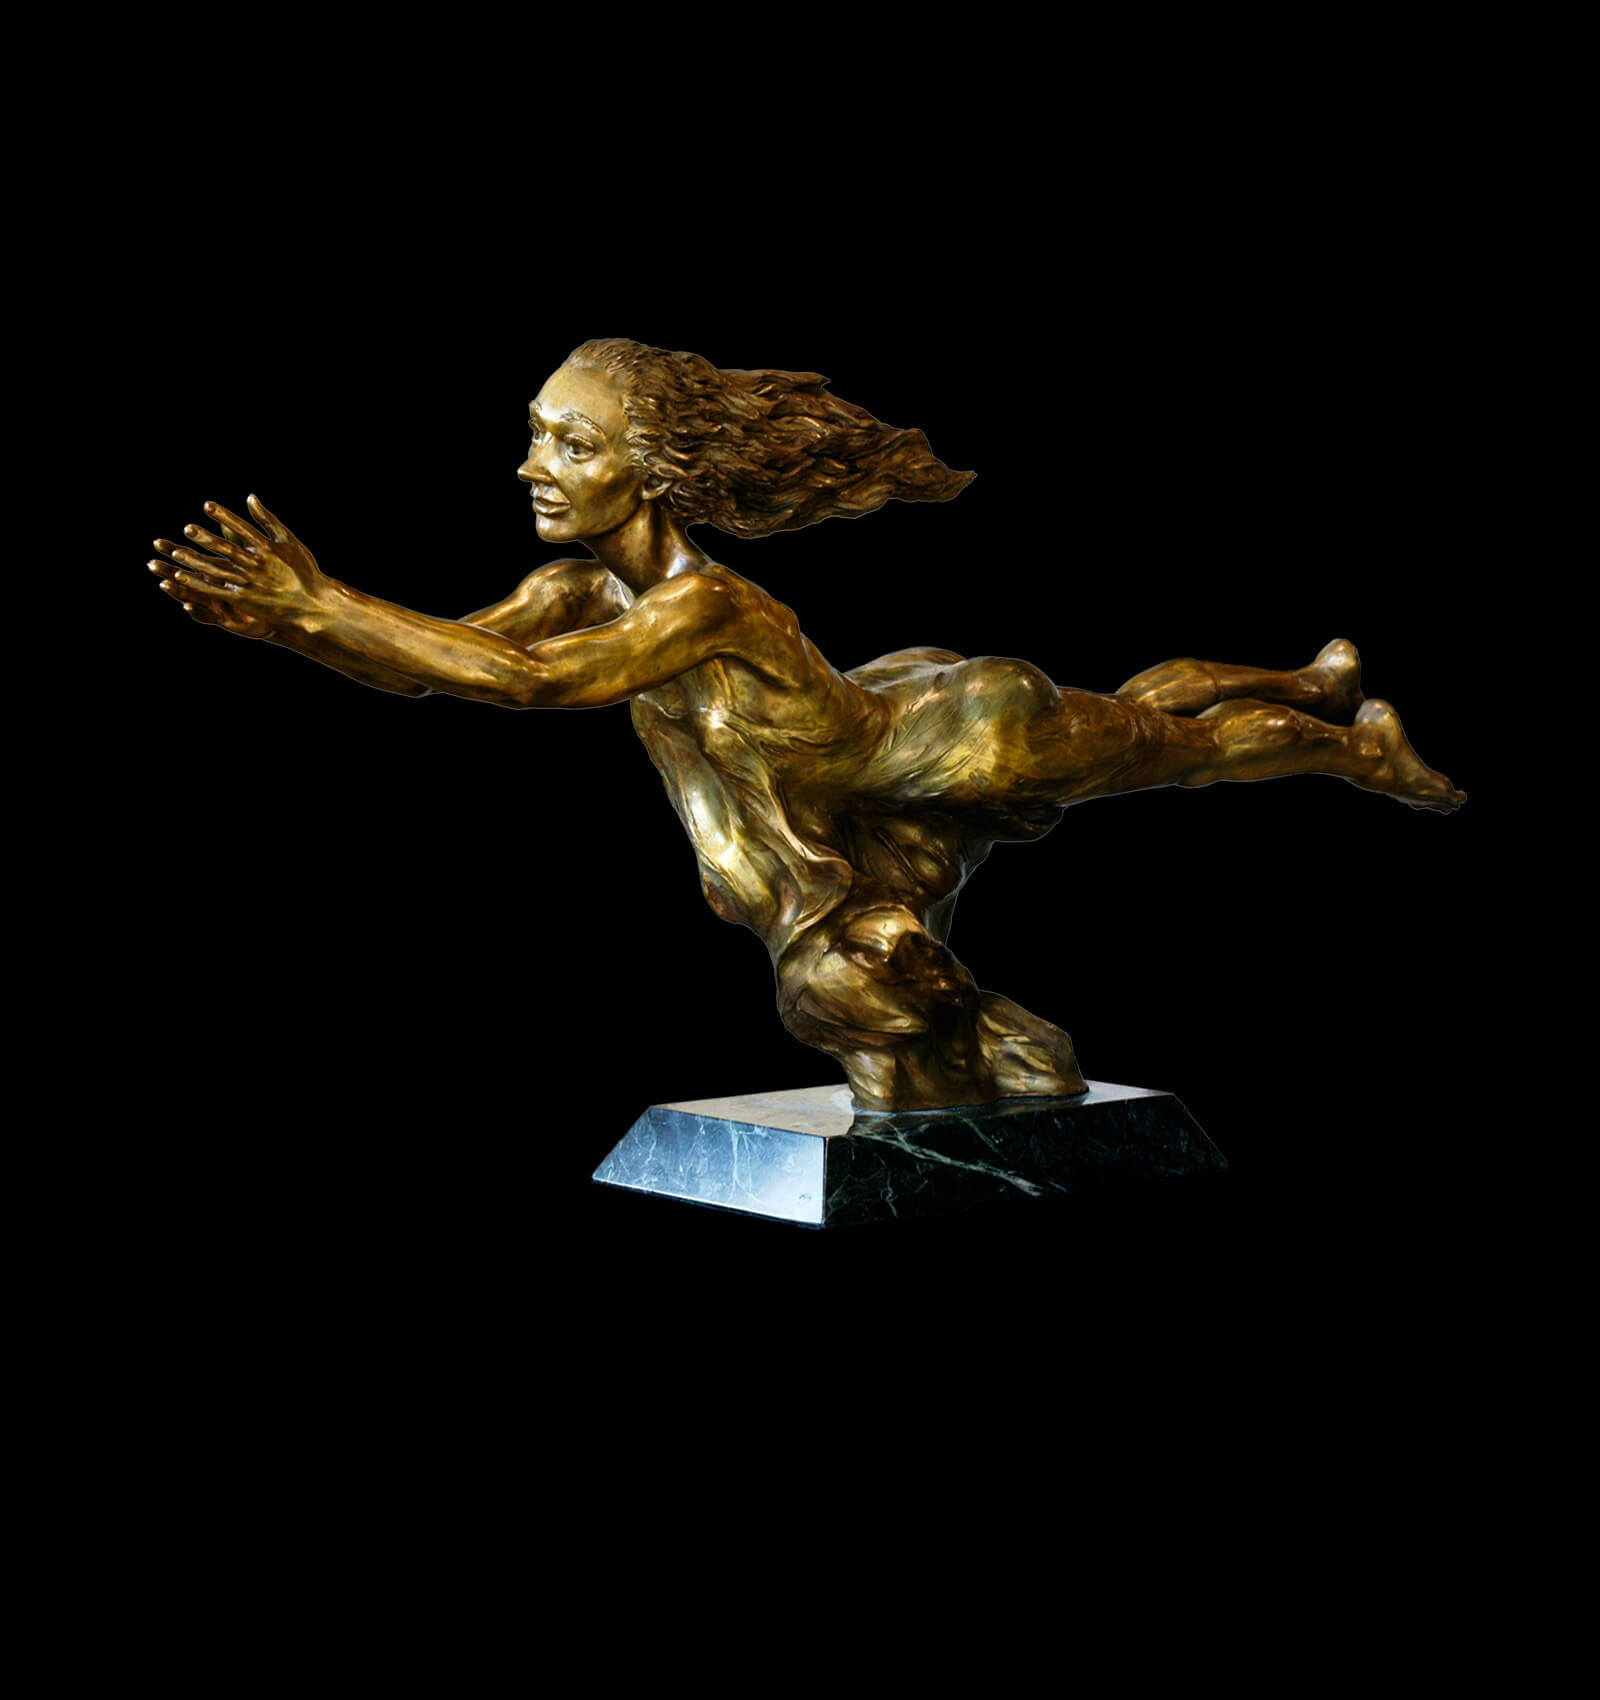 Nimue a figurative bronze sculpture by sculptor Andrew DeVries